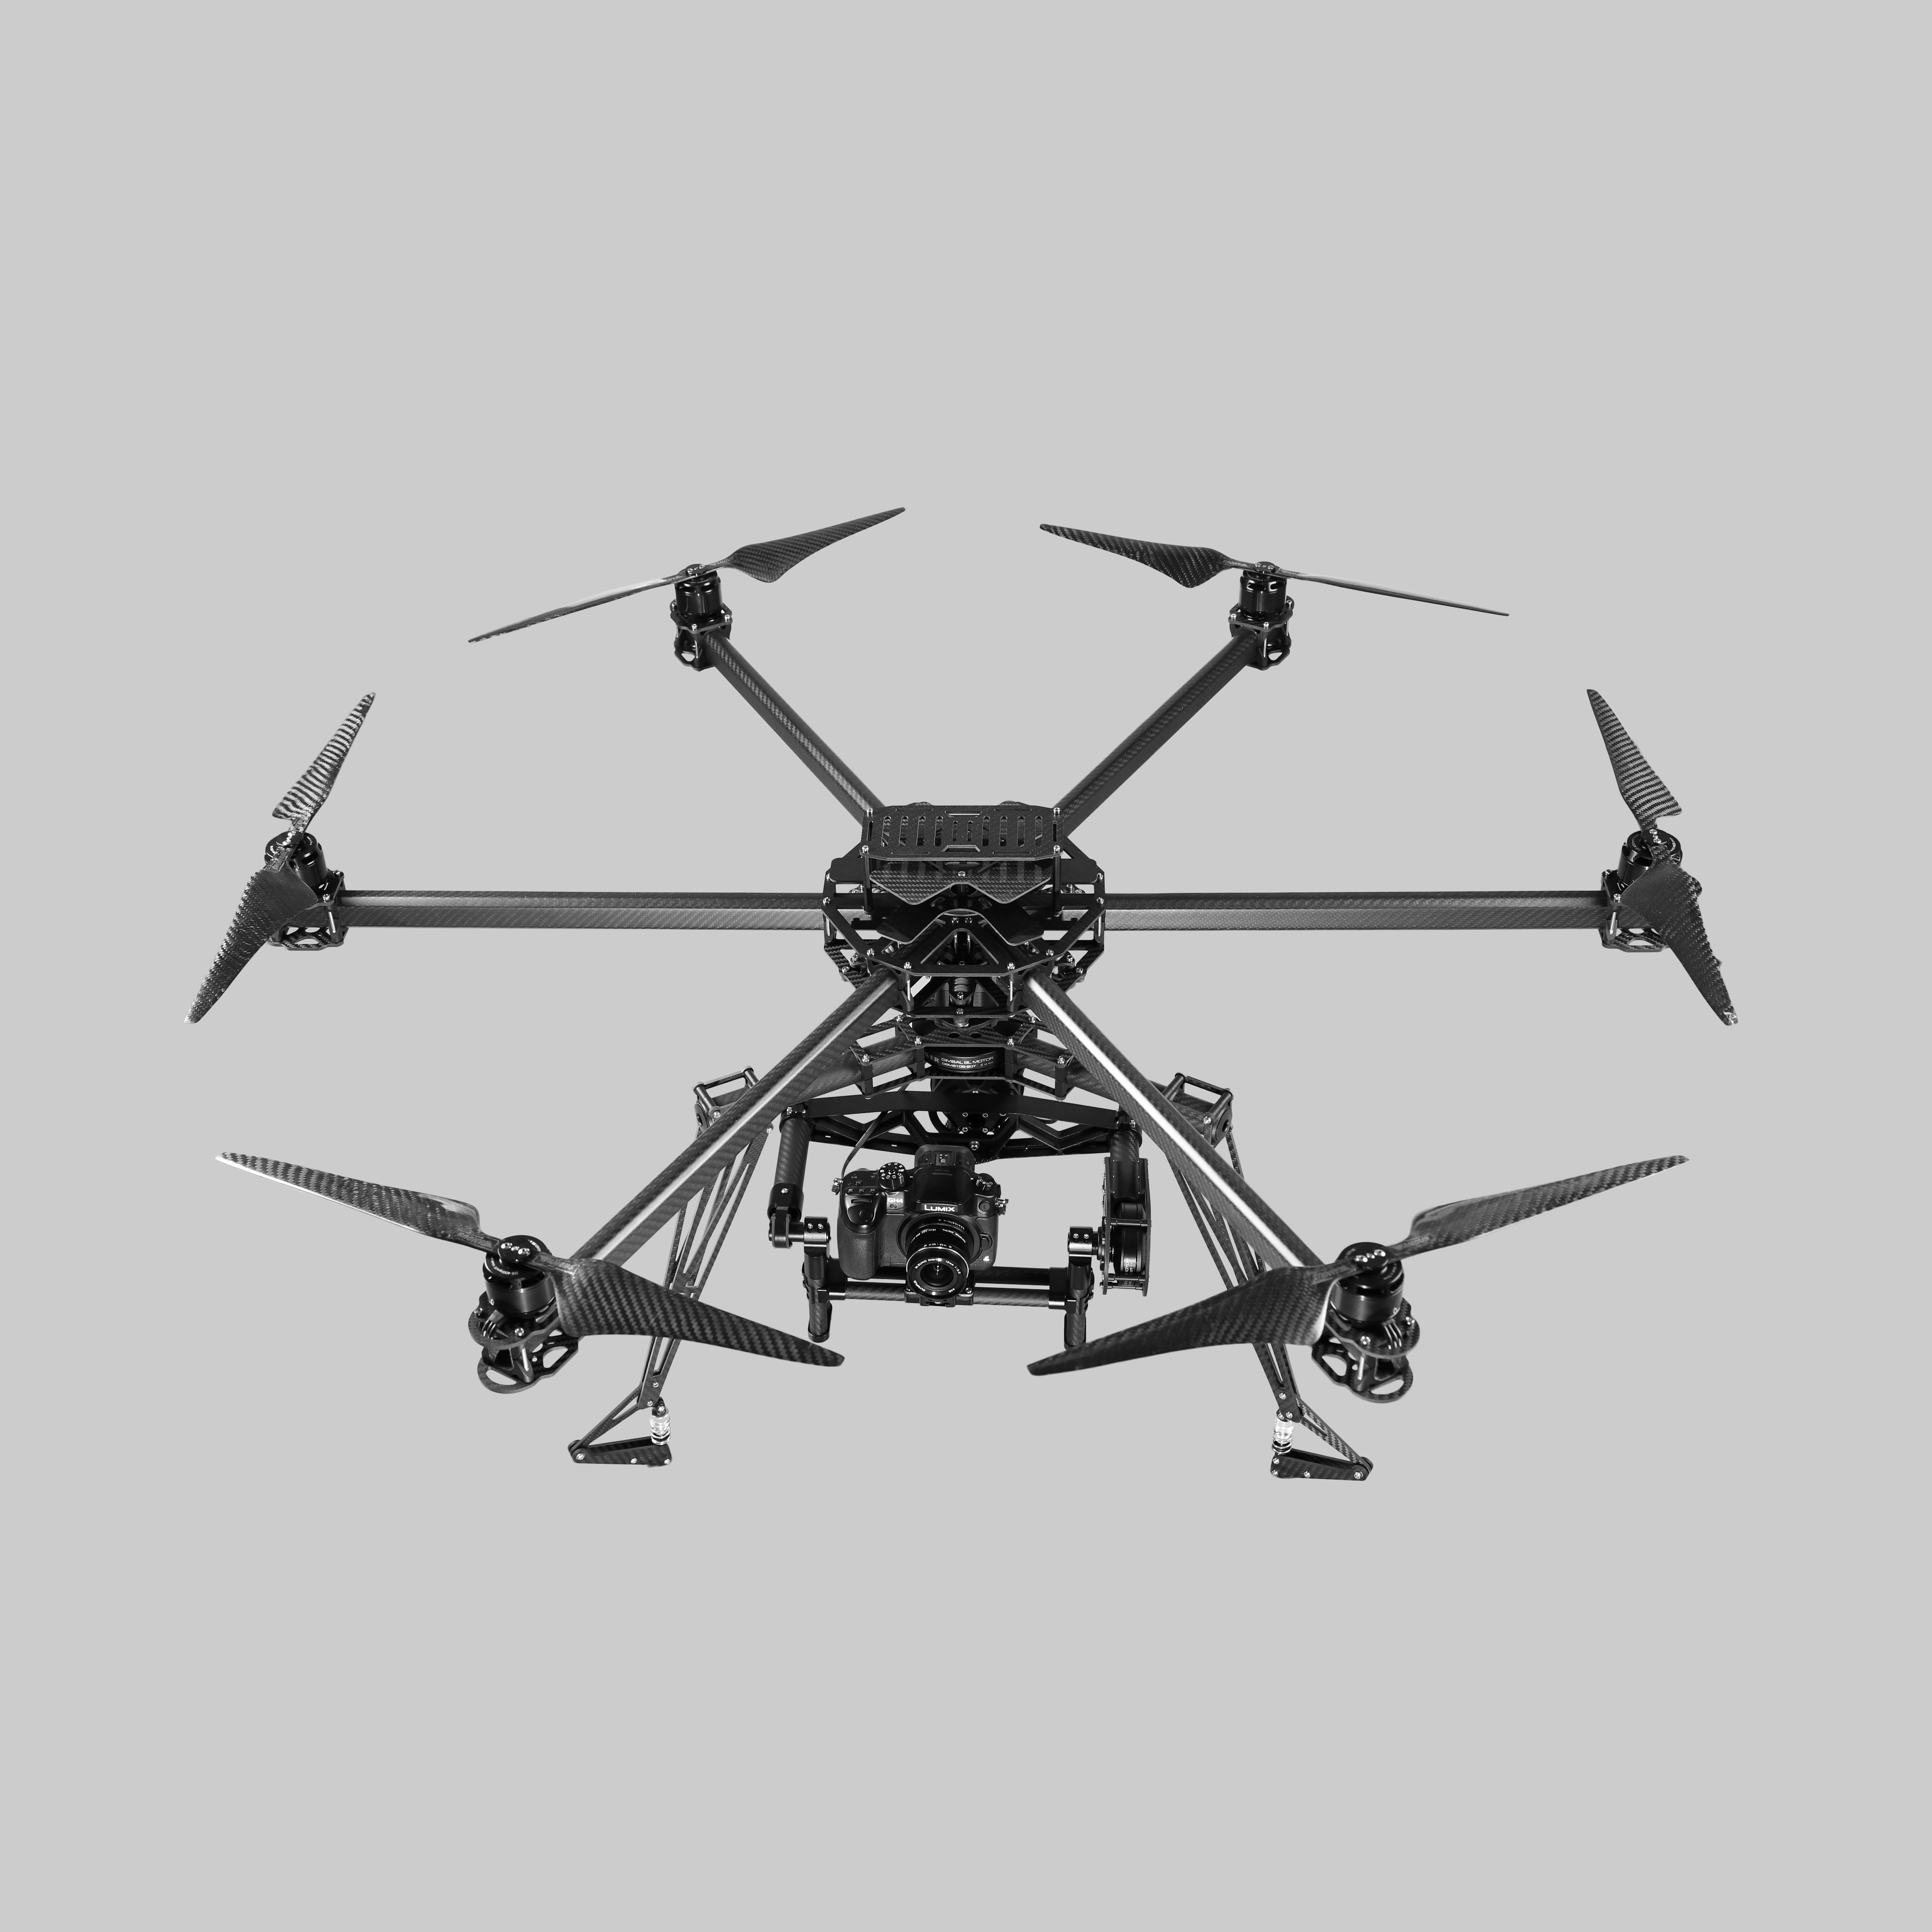 Hexcopter RC Multicopter fpv with Proffesional Cinestar system